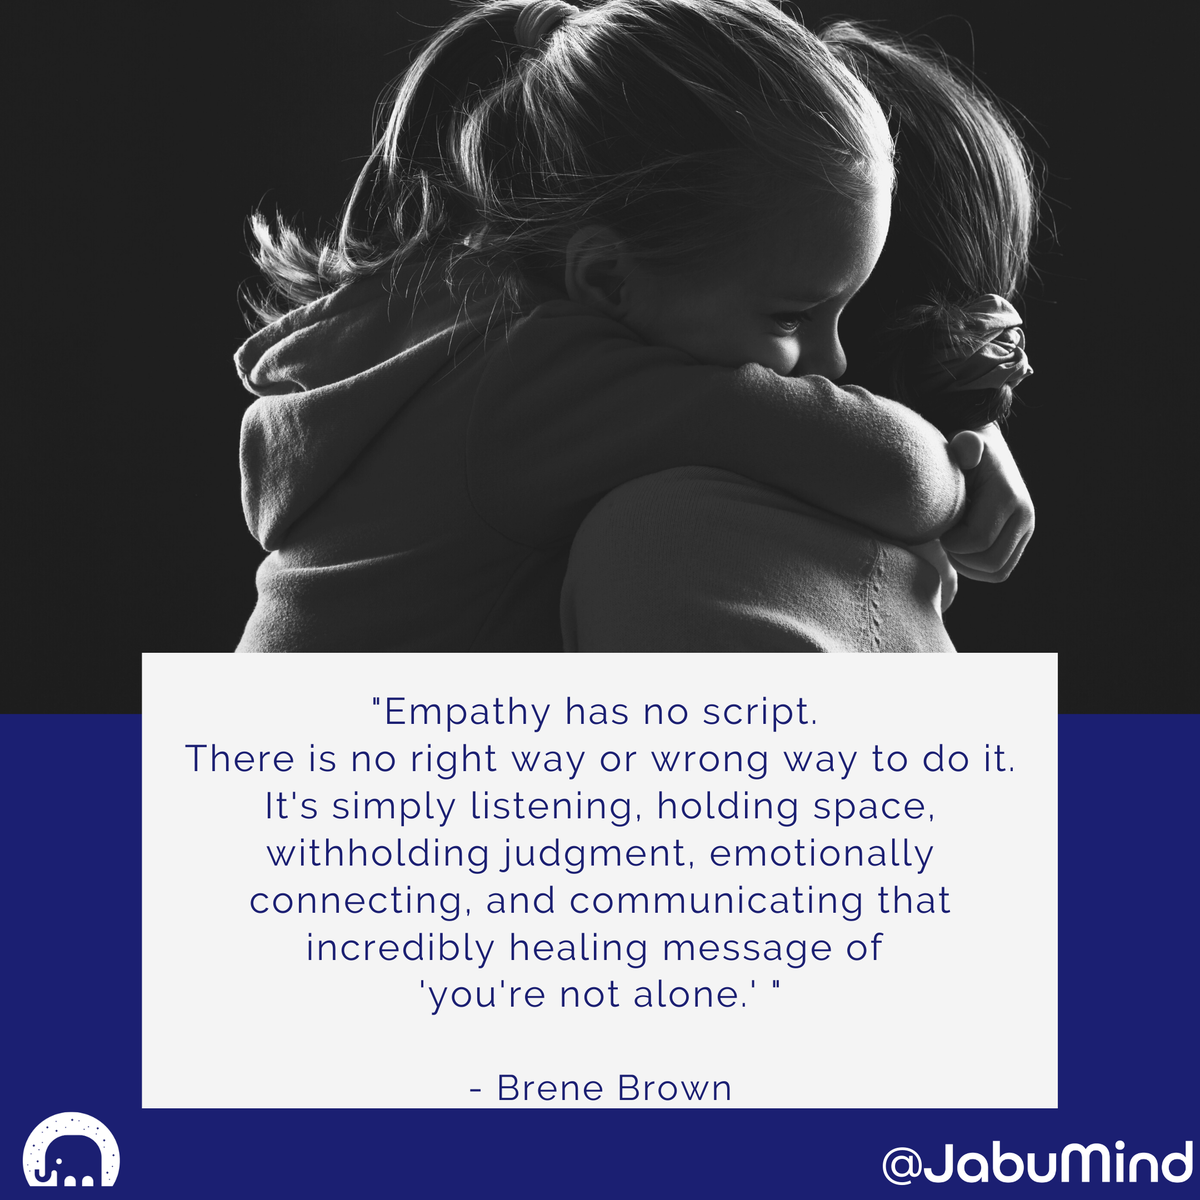 With COVID on the rise and school reopenings a constant debate, we all need empathy now more than ever. We're not alone; we're in this together. https://soo.nr/KIjK  @brenebrown #teacherlife #education #teachers #mindfulness #mindfulliving #mindfulnessmatters #jabumindpic.twitter.com/jraxFWMkgC